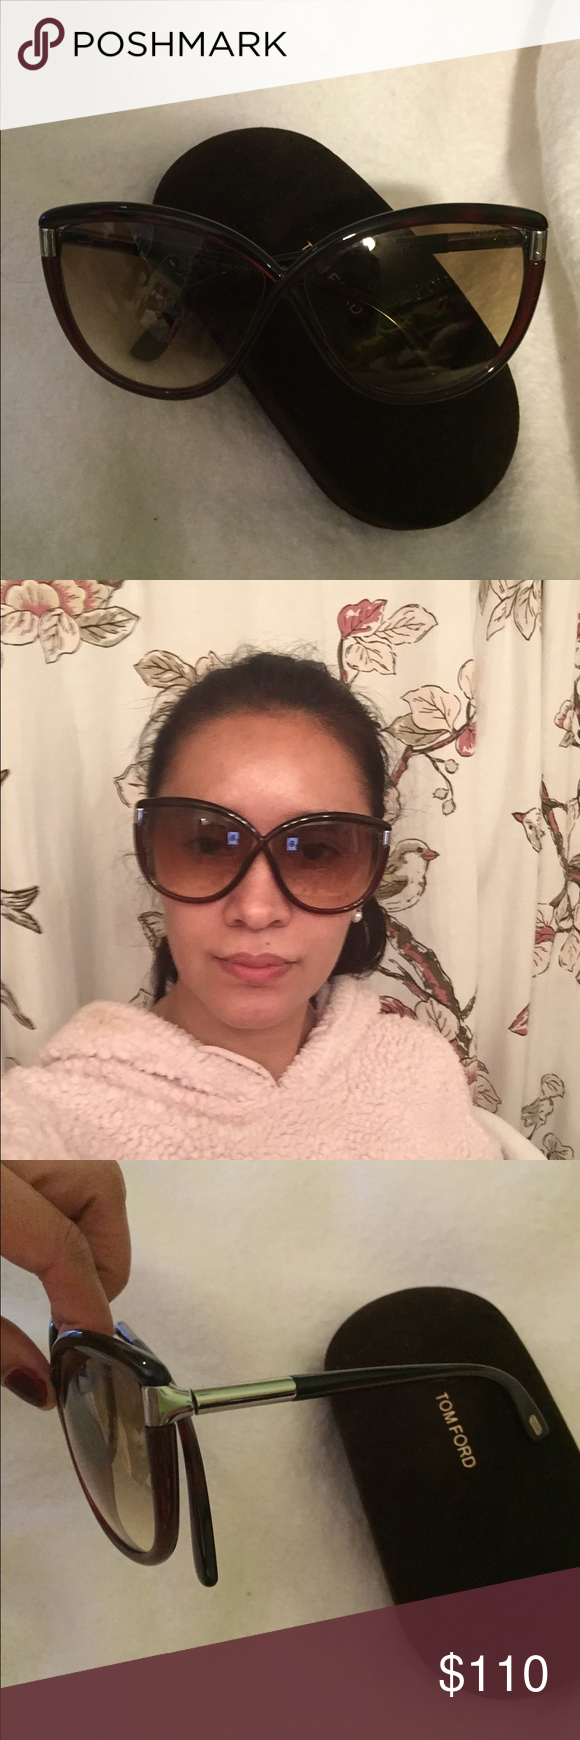 Sum glasses price is firm Tom ford TF 327 Abbey 52f dark red Havana classic  cat eye frame sunglasses brown gradient 63mm. Oversize ,plastic from Italy  color ... be9e3aca2df